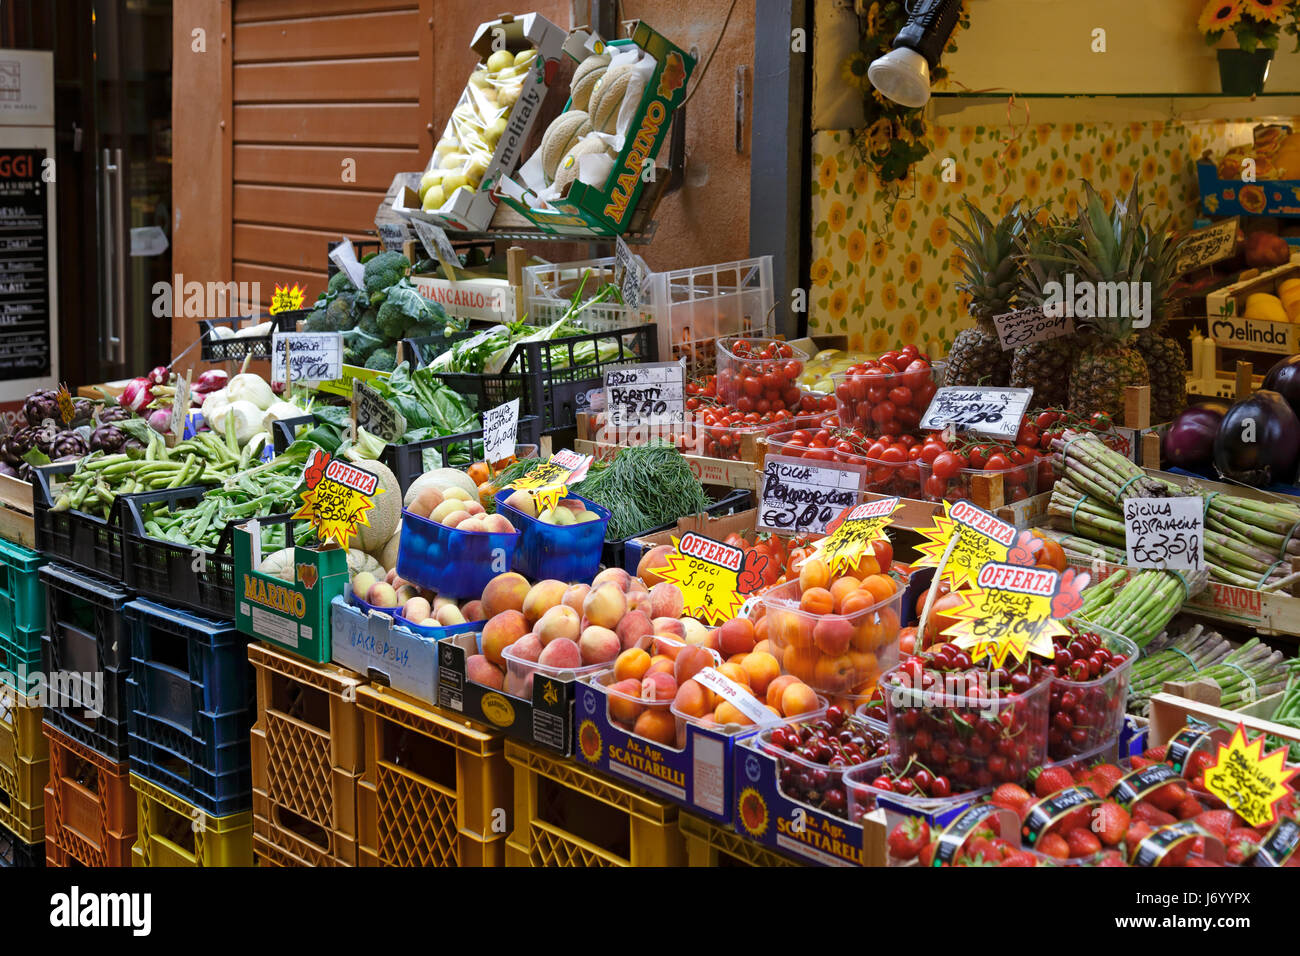 Fruit and vegetable stalls on 'Foodie Street' Via Pescherie Vecchie, street of the Old Fish Mongers, Bologna, - Stock Image